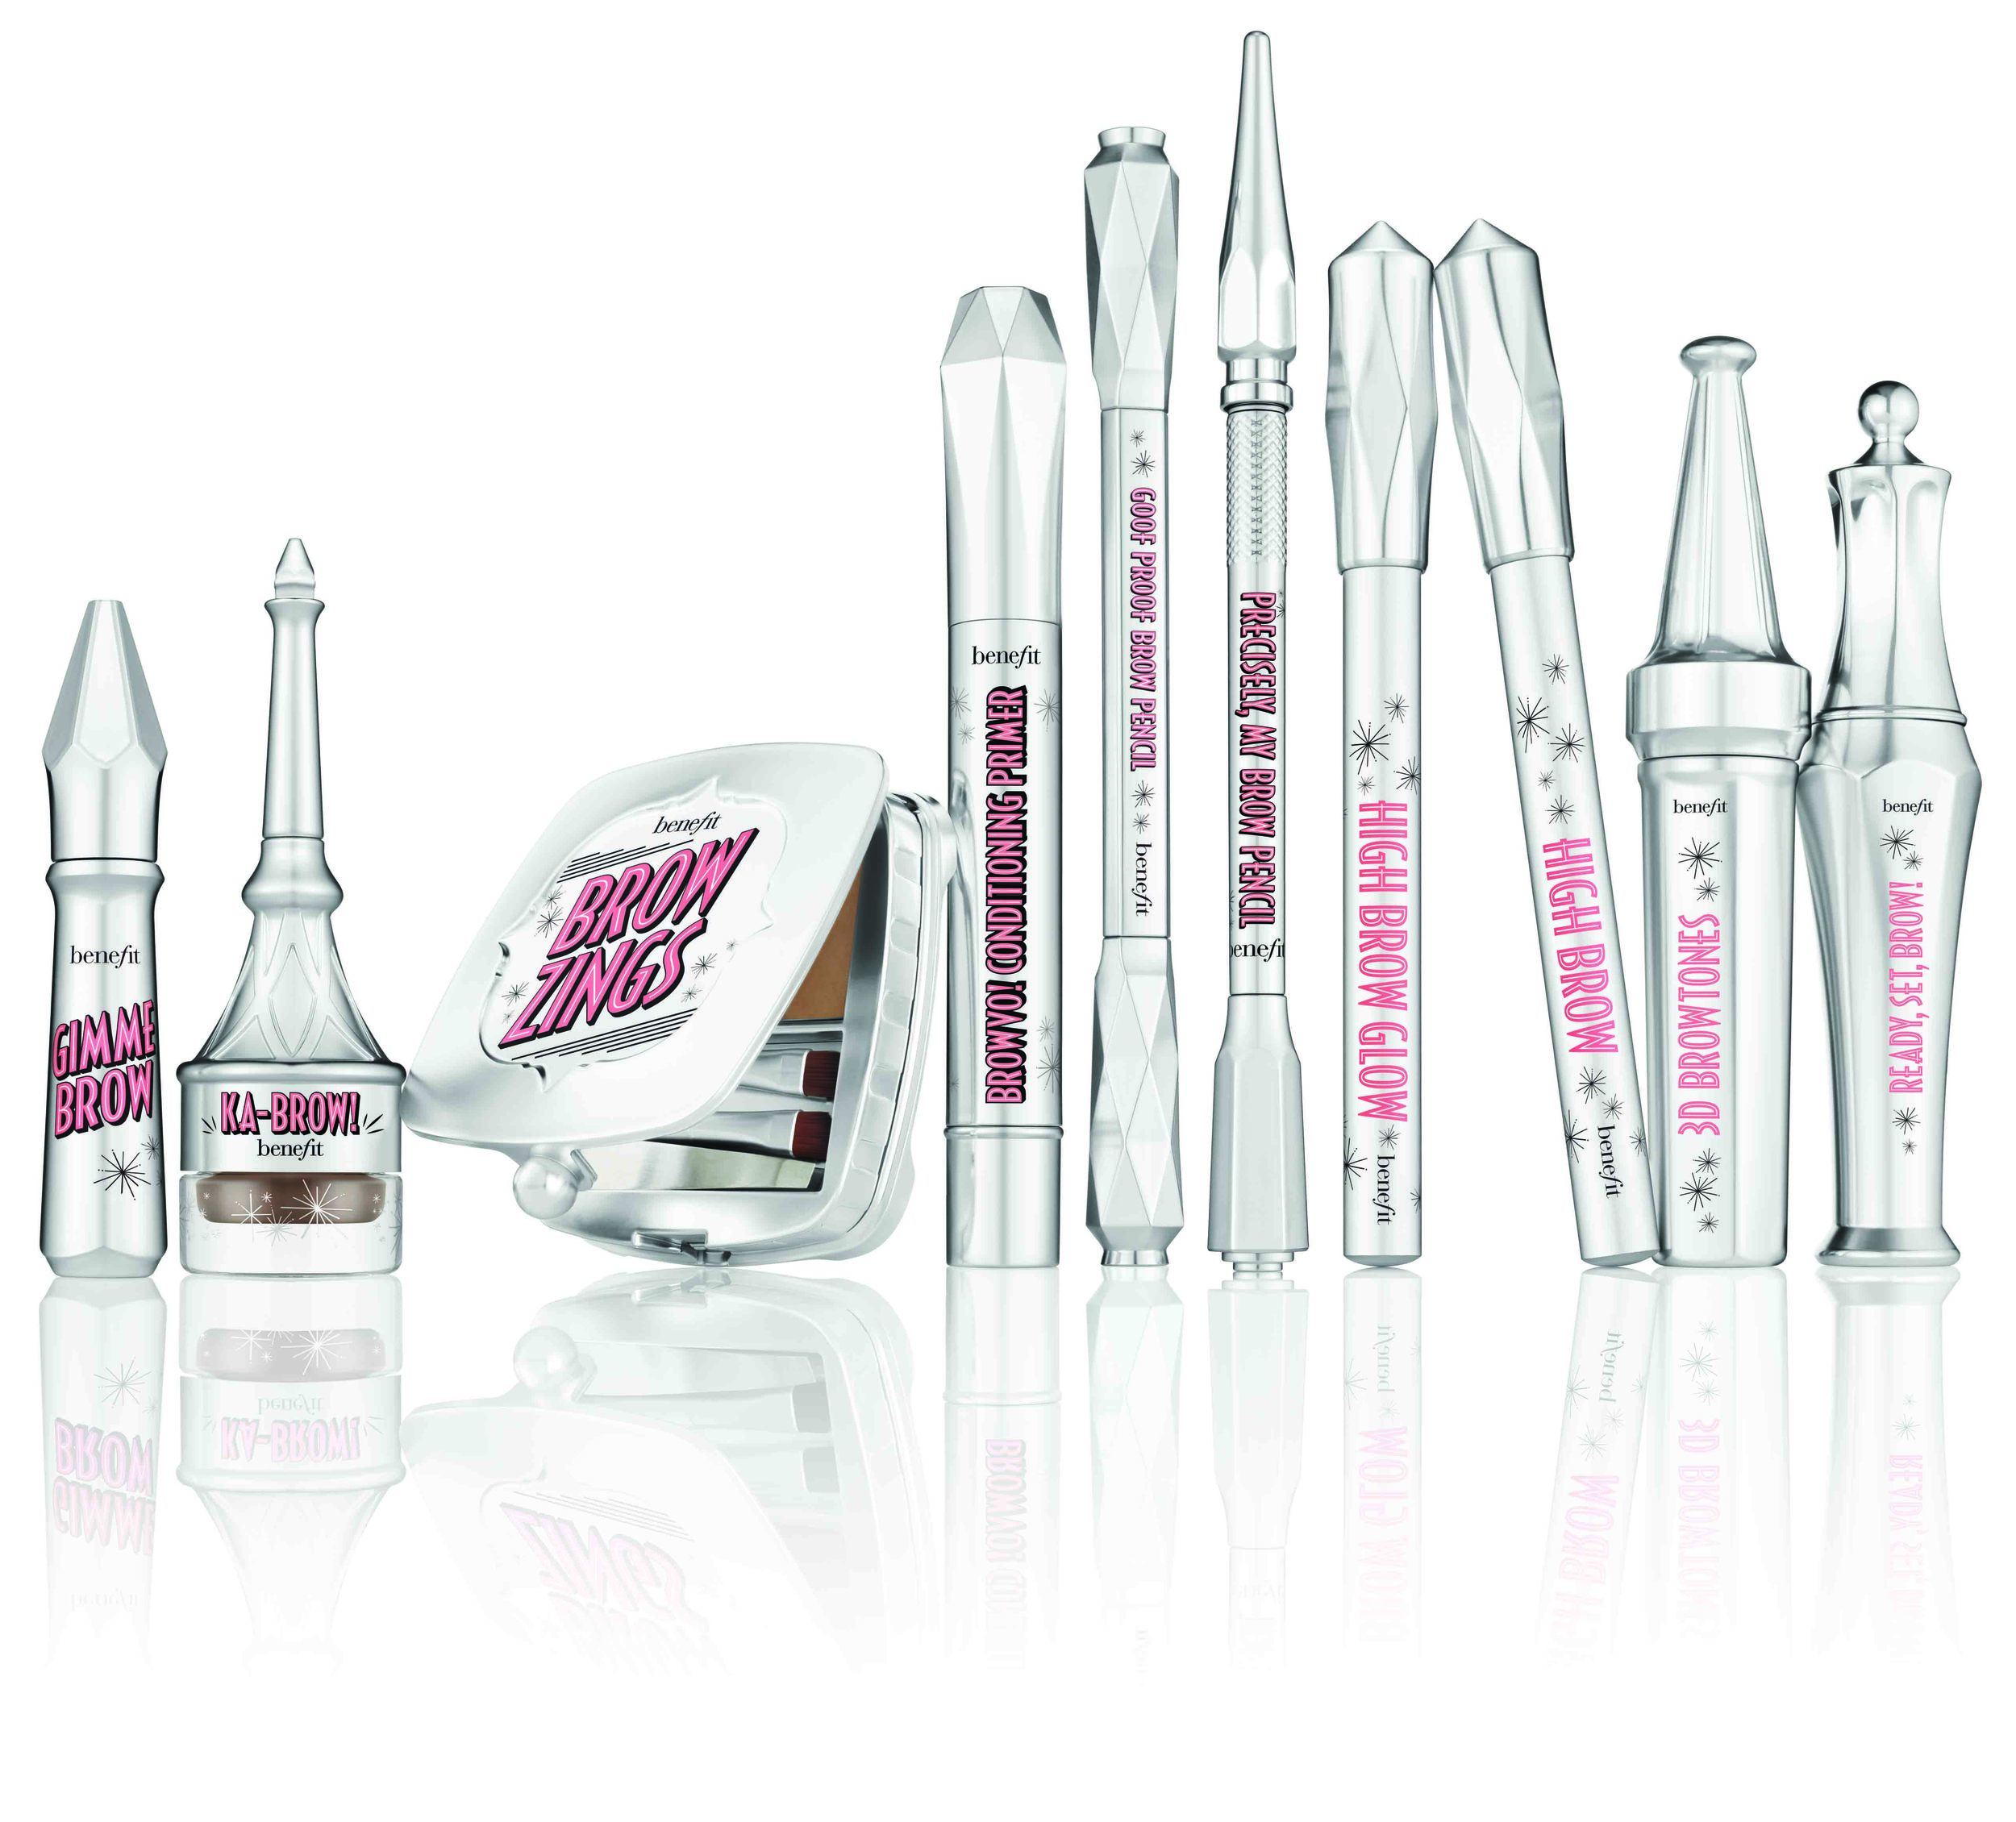 Benefit brow collection_groupshot_caps_closed.jpg